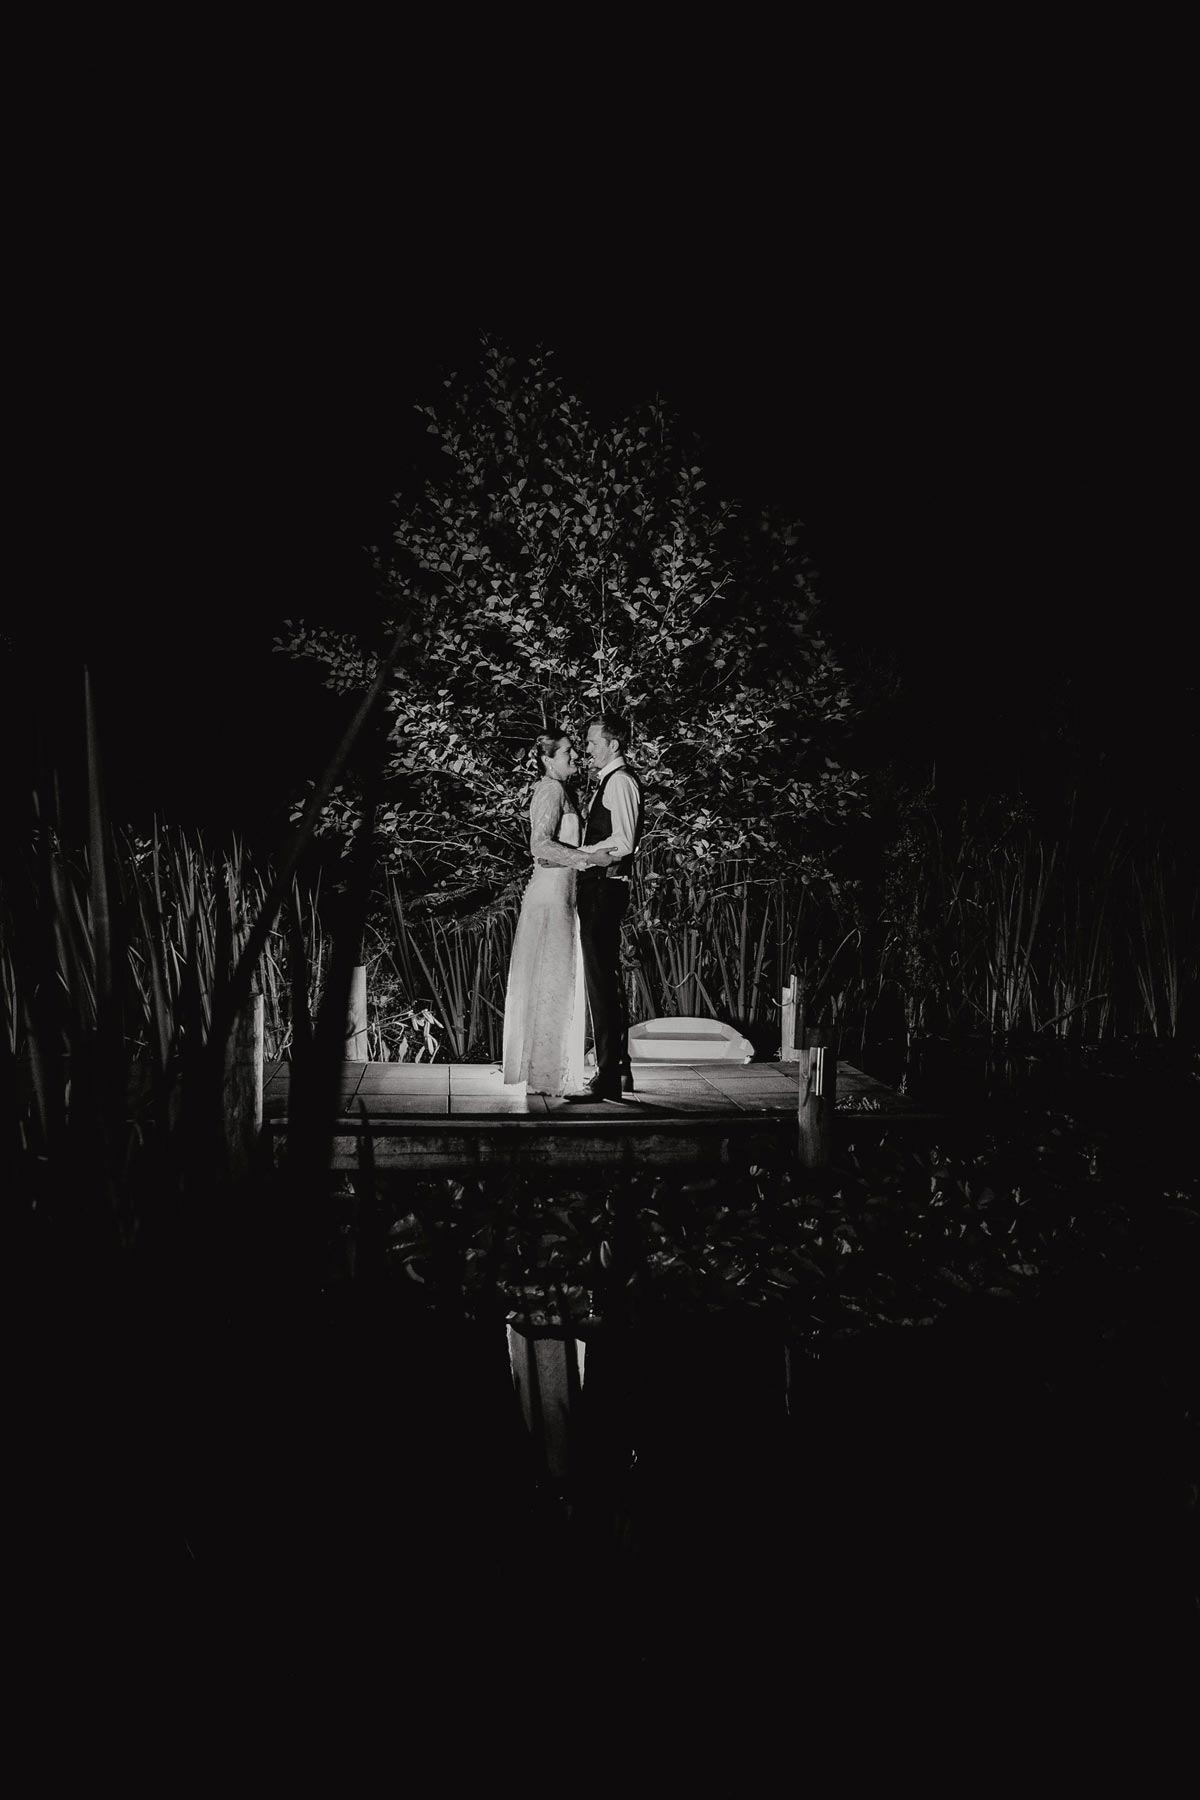 Night backlit creative photos of bride and groom in bridgewater country estate gardens after wedding reception. Venue in Kaukapakapa, Auckland photo by sarah weber photography